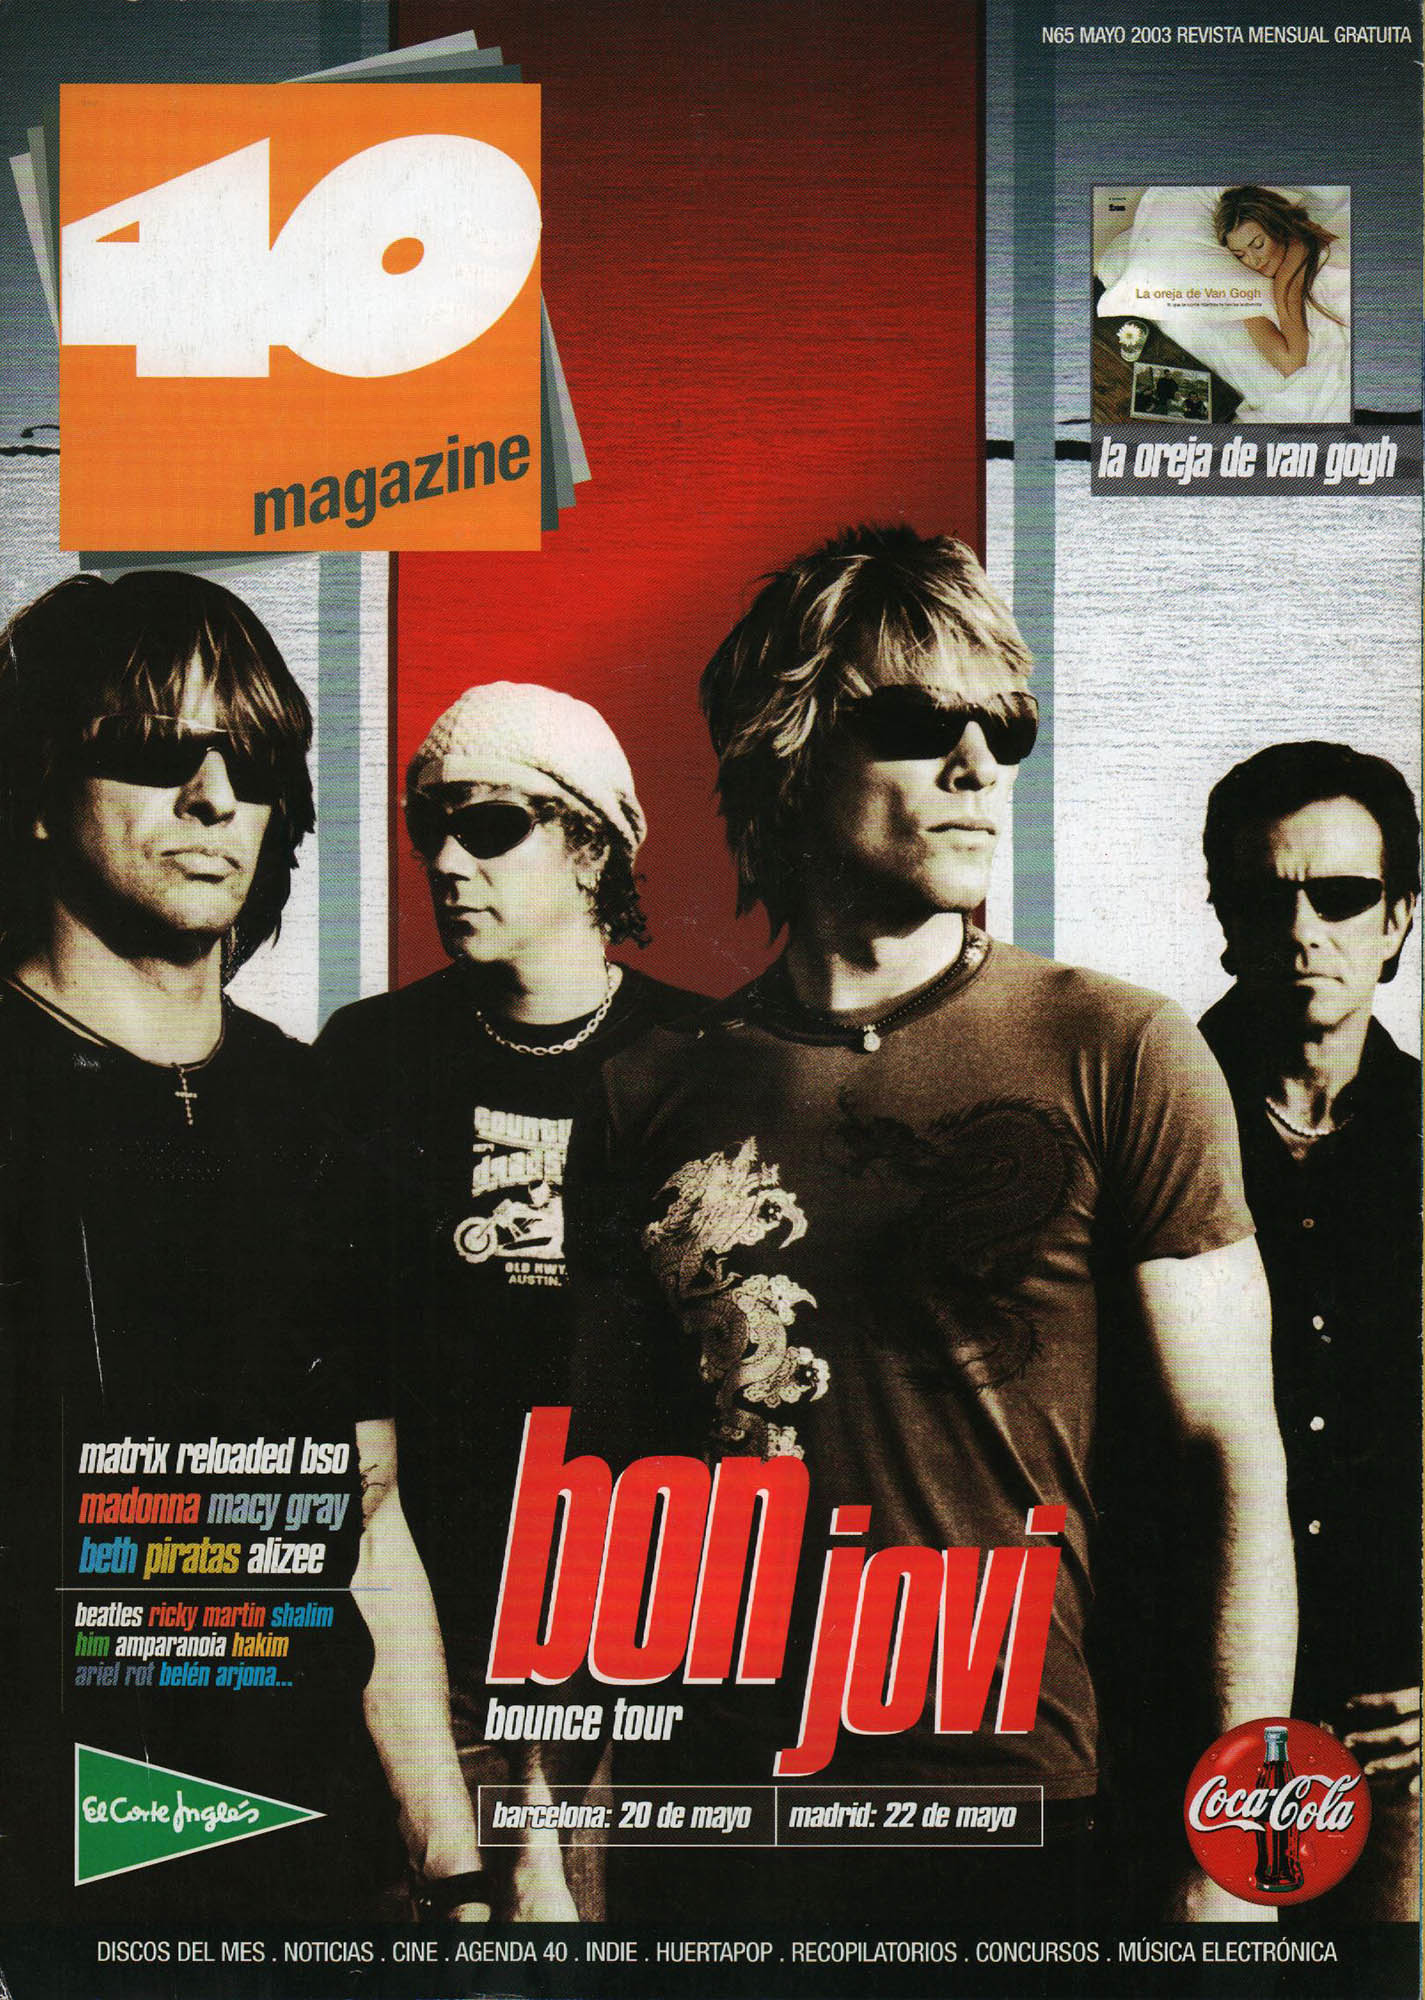 Bon Jovi - Bounce Tour | 40 Magazine | may 2003